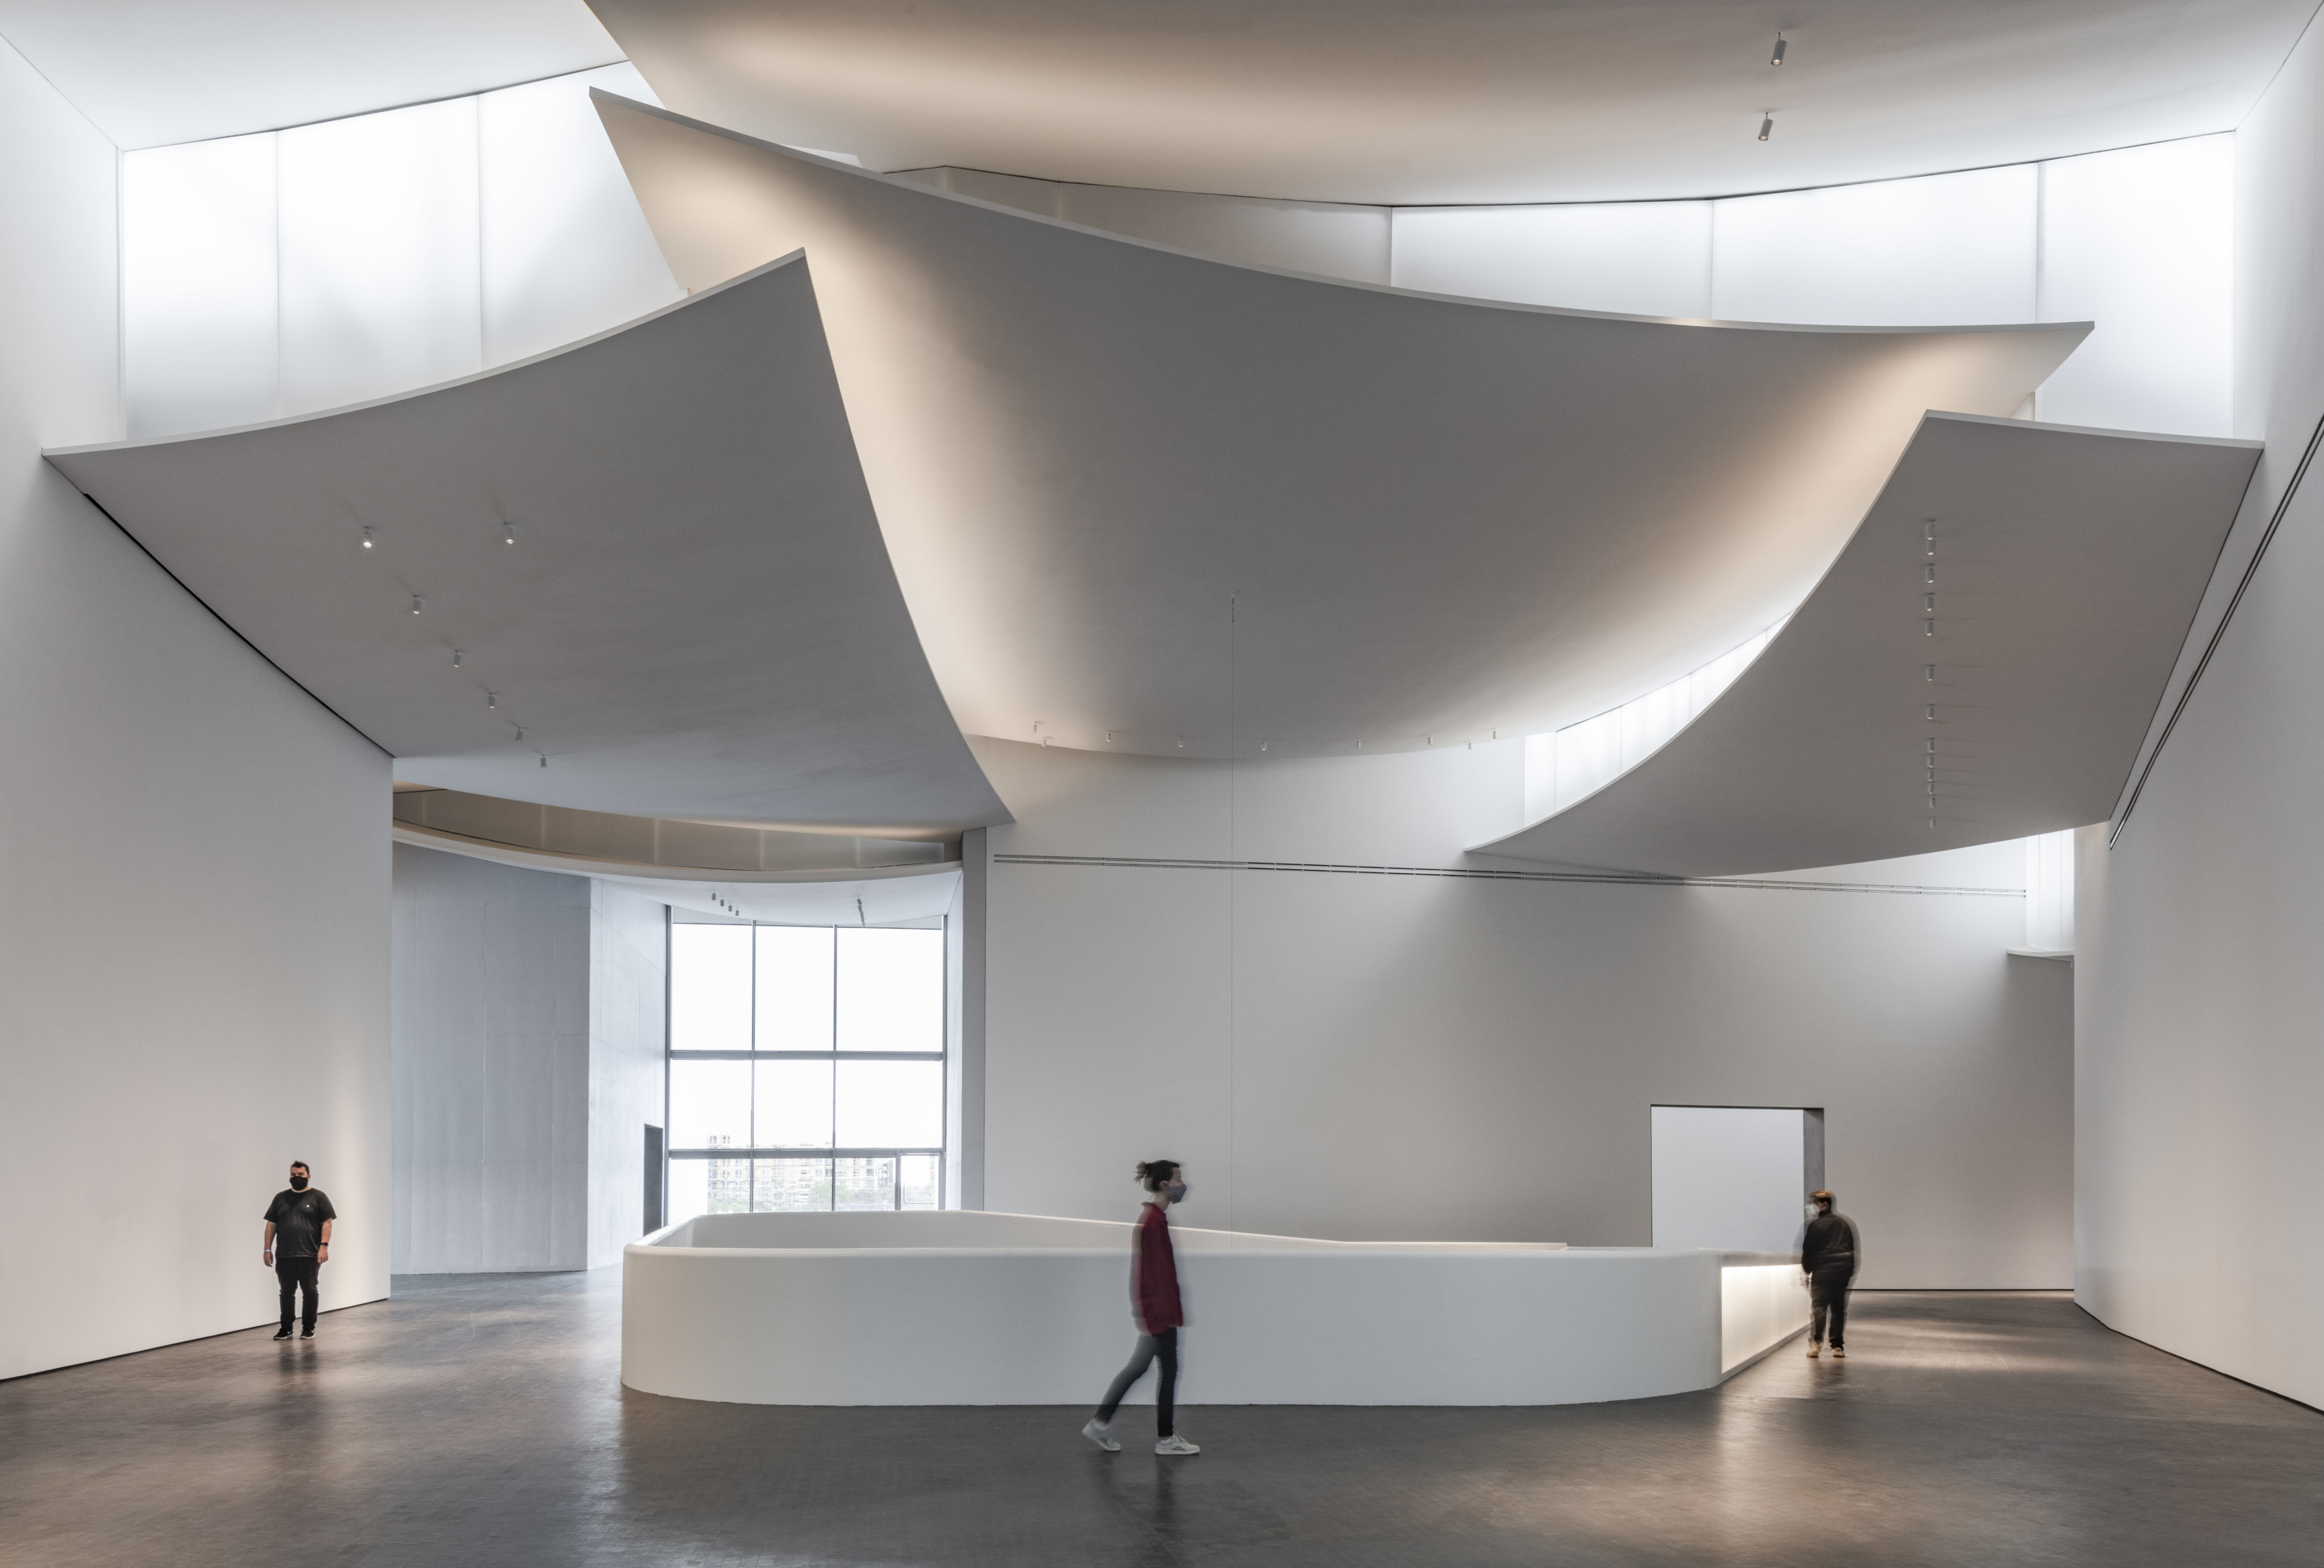 The interior of the Kinder Building at MFAH